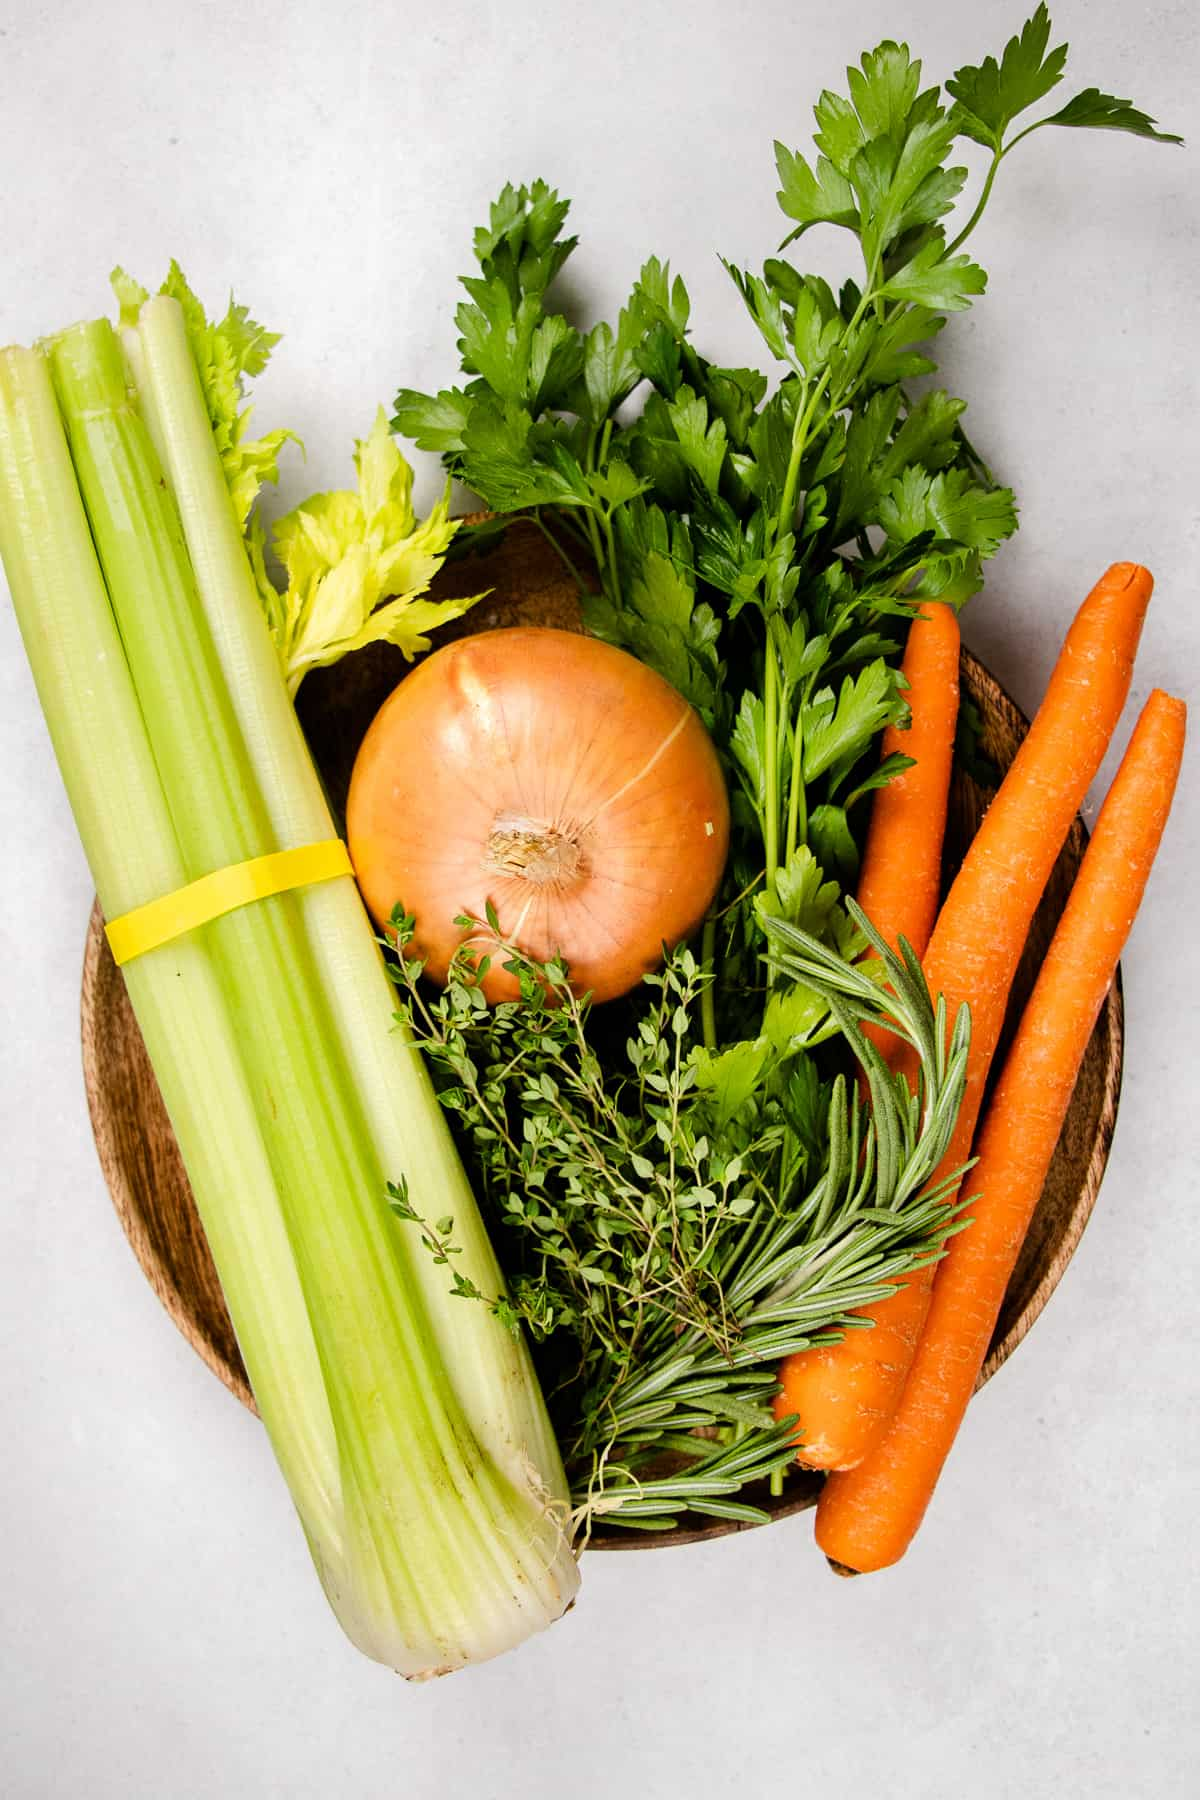 Celety, carrots, onion, parsley on a wooden plate.